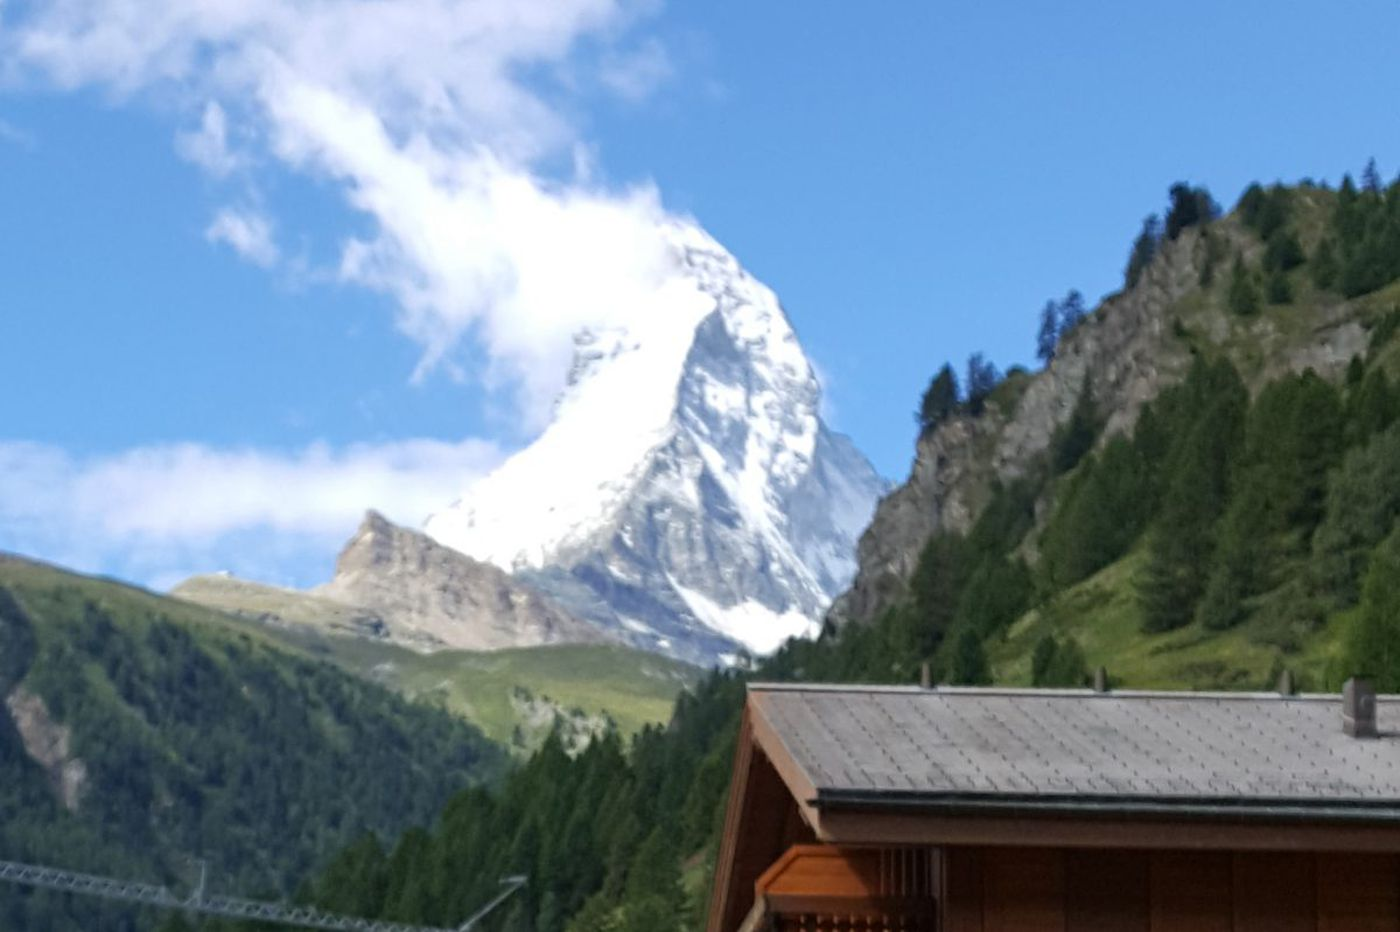 Personal Journey: The legendary Matterhorn is a Swiss can't-miss